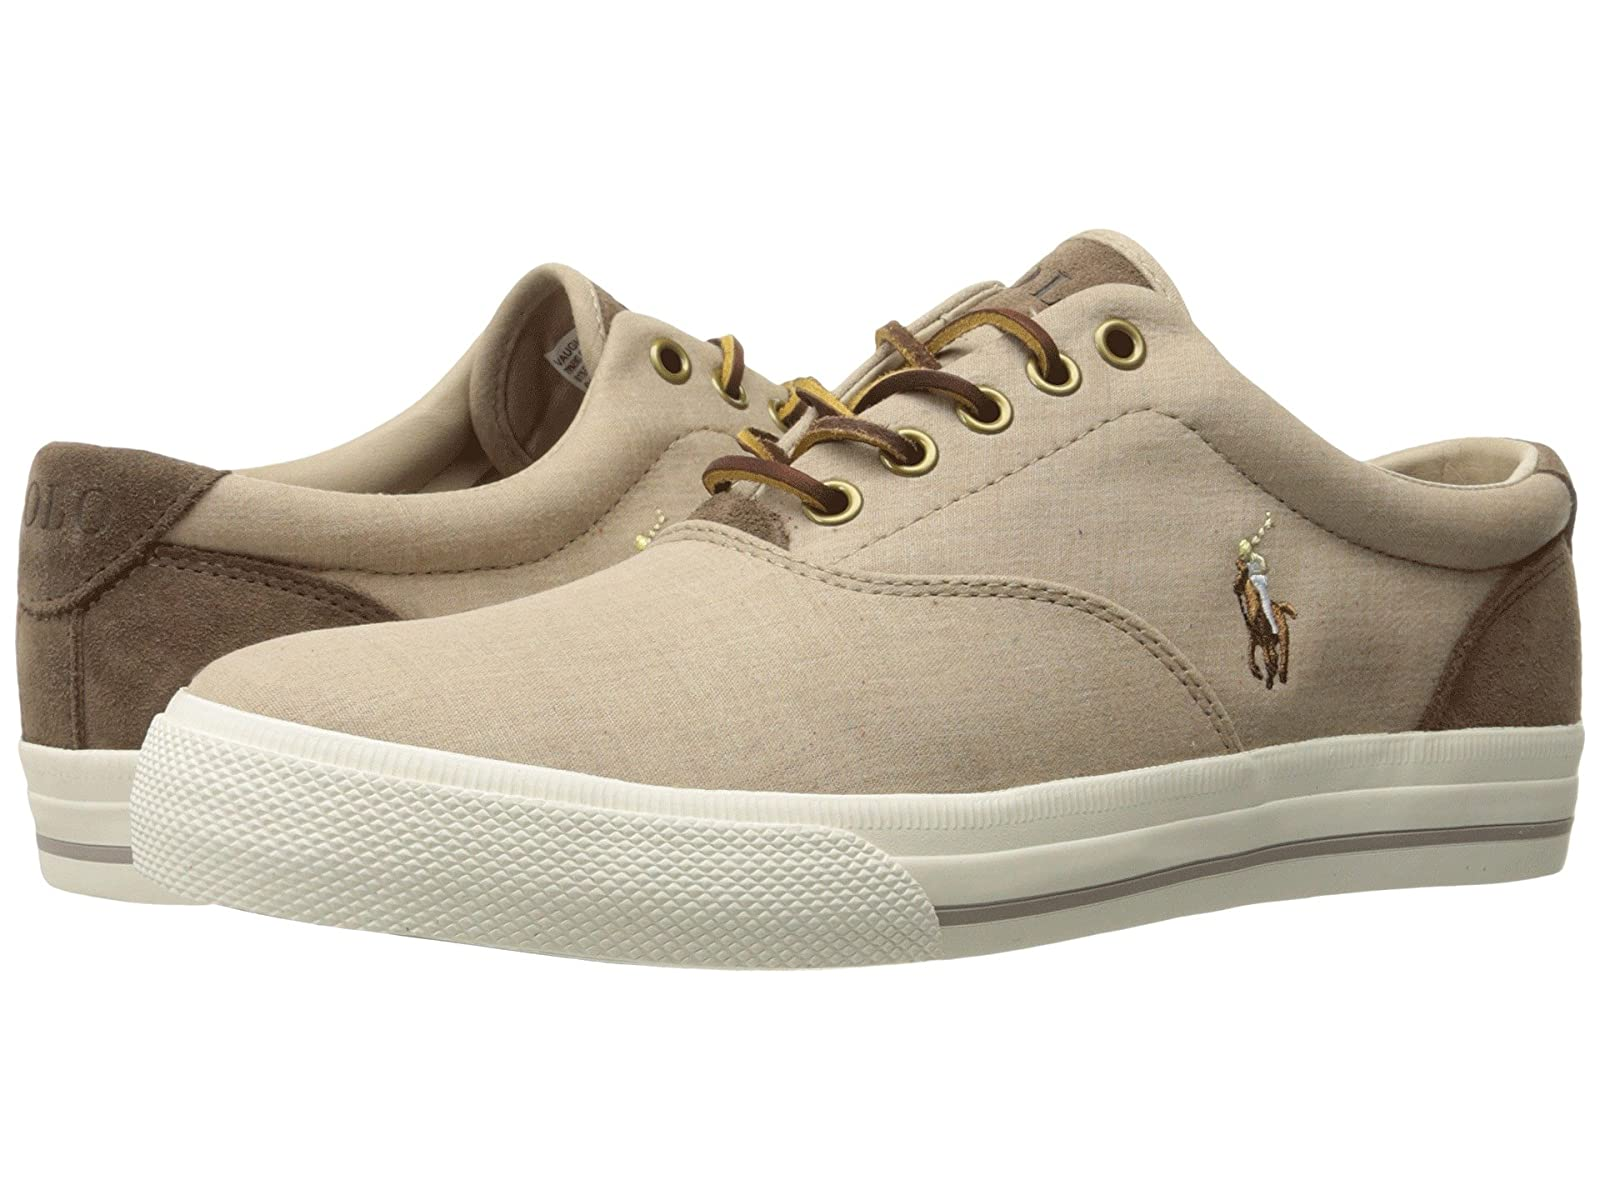 Polo Ralph Lauren VaughnCheap and distinctive eye-catching shoes